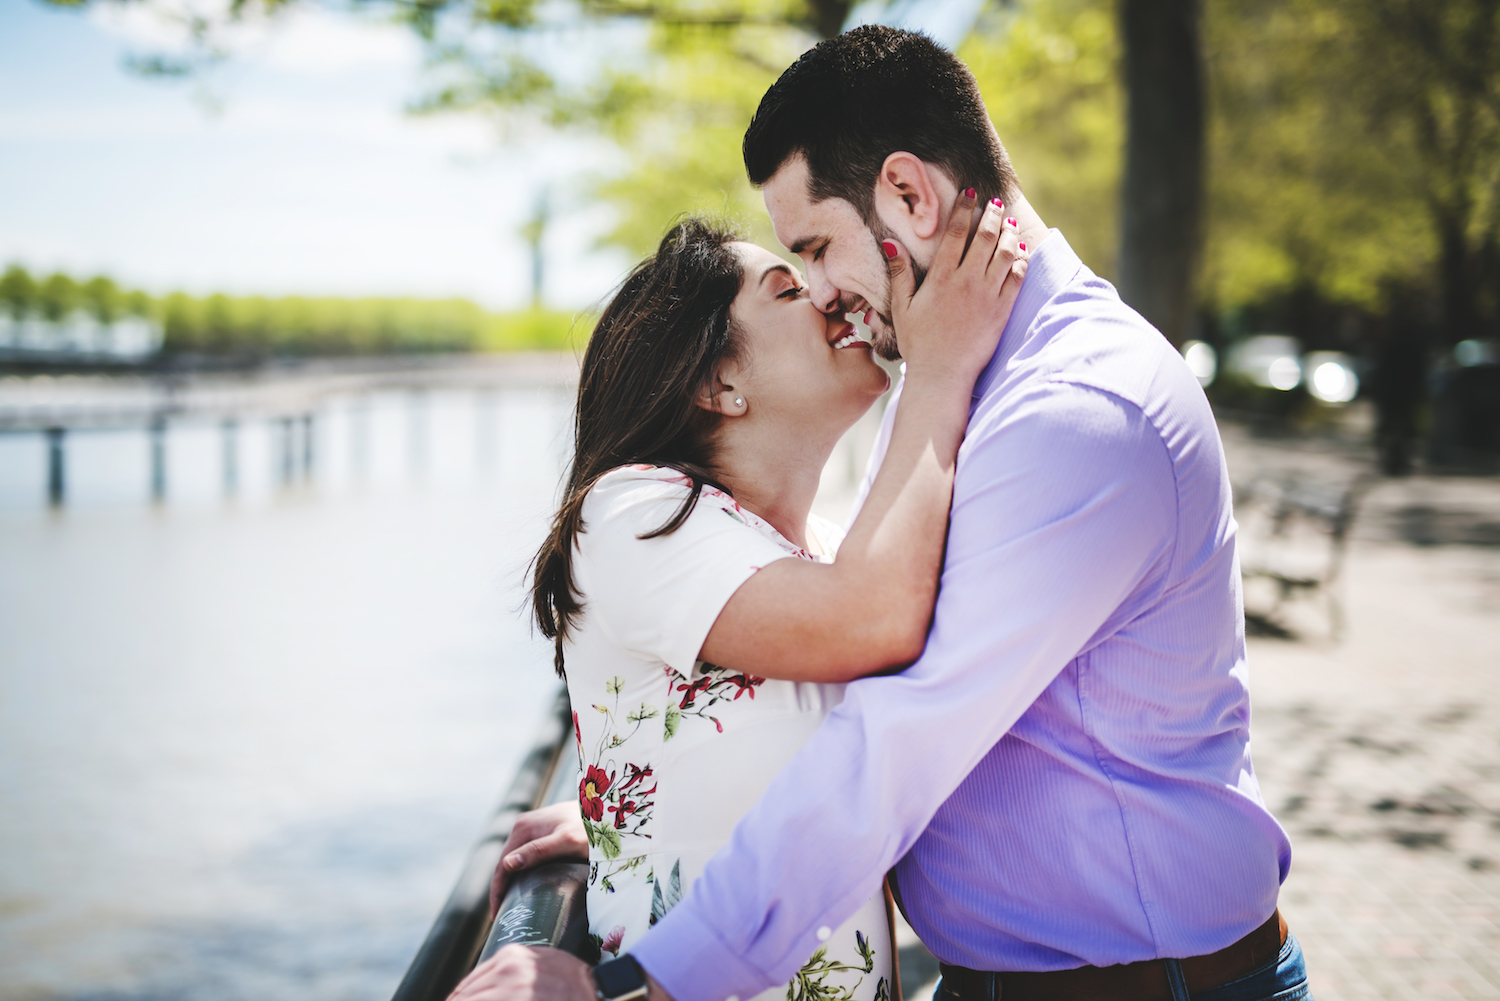 stephanie-&-charles-embracing-and-smiling-by-water-engagement-photos-nj